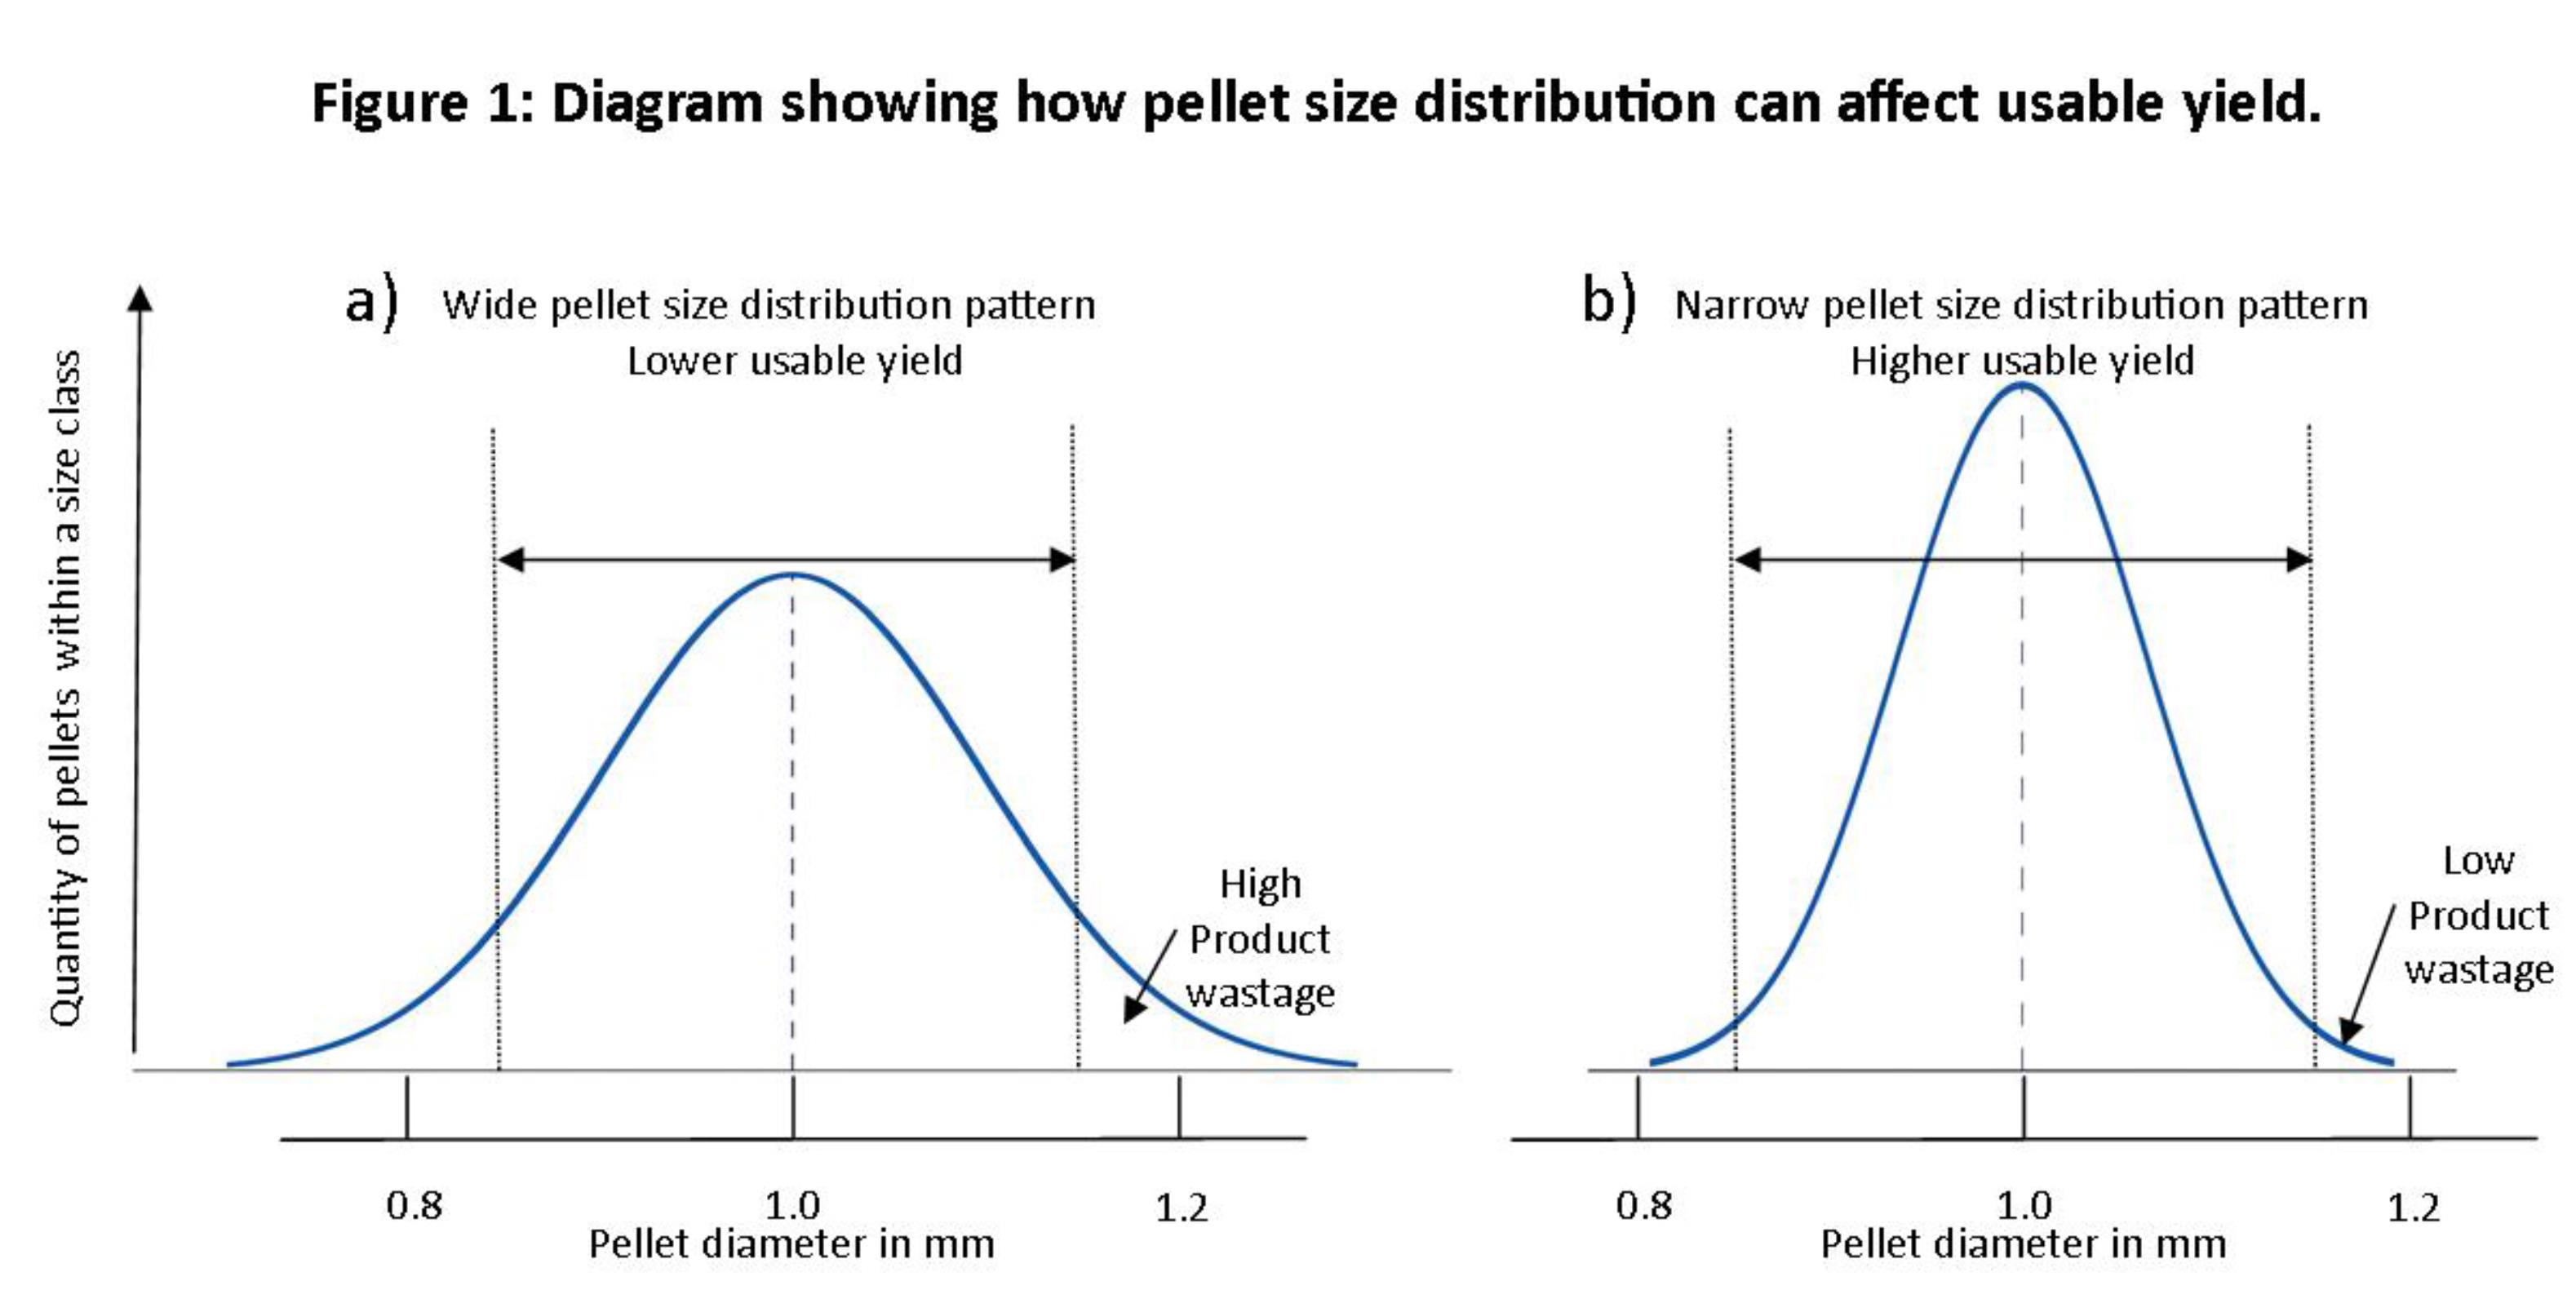 How pellet size distribution can affect useable yield